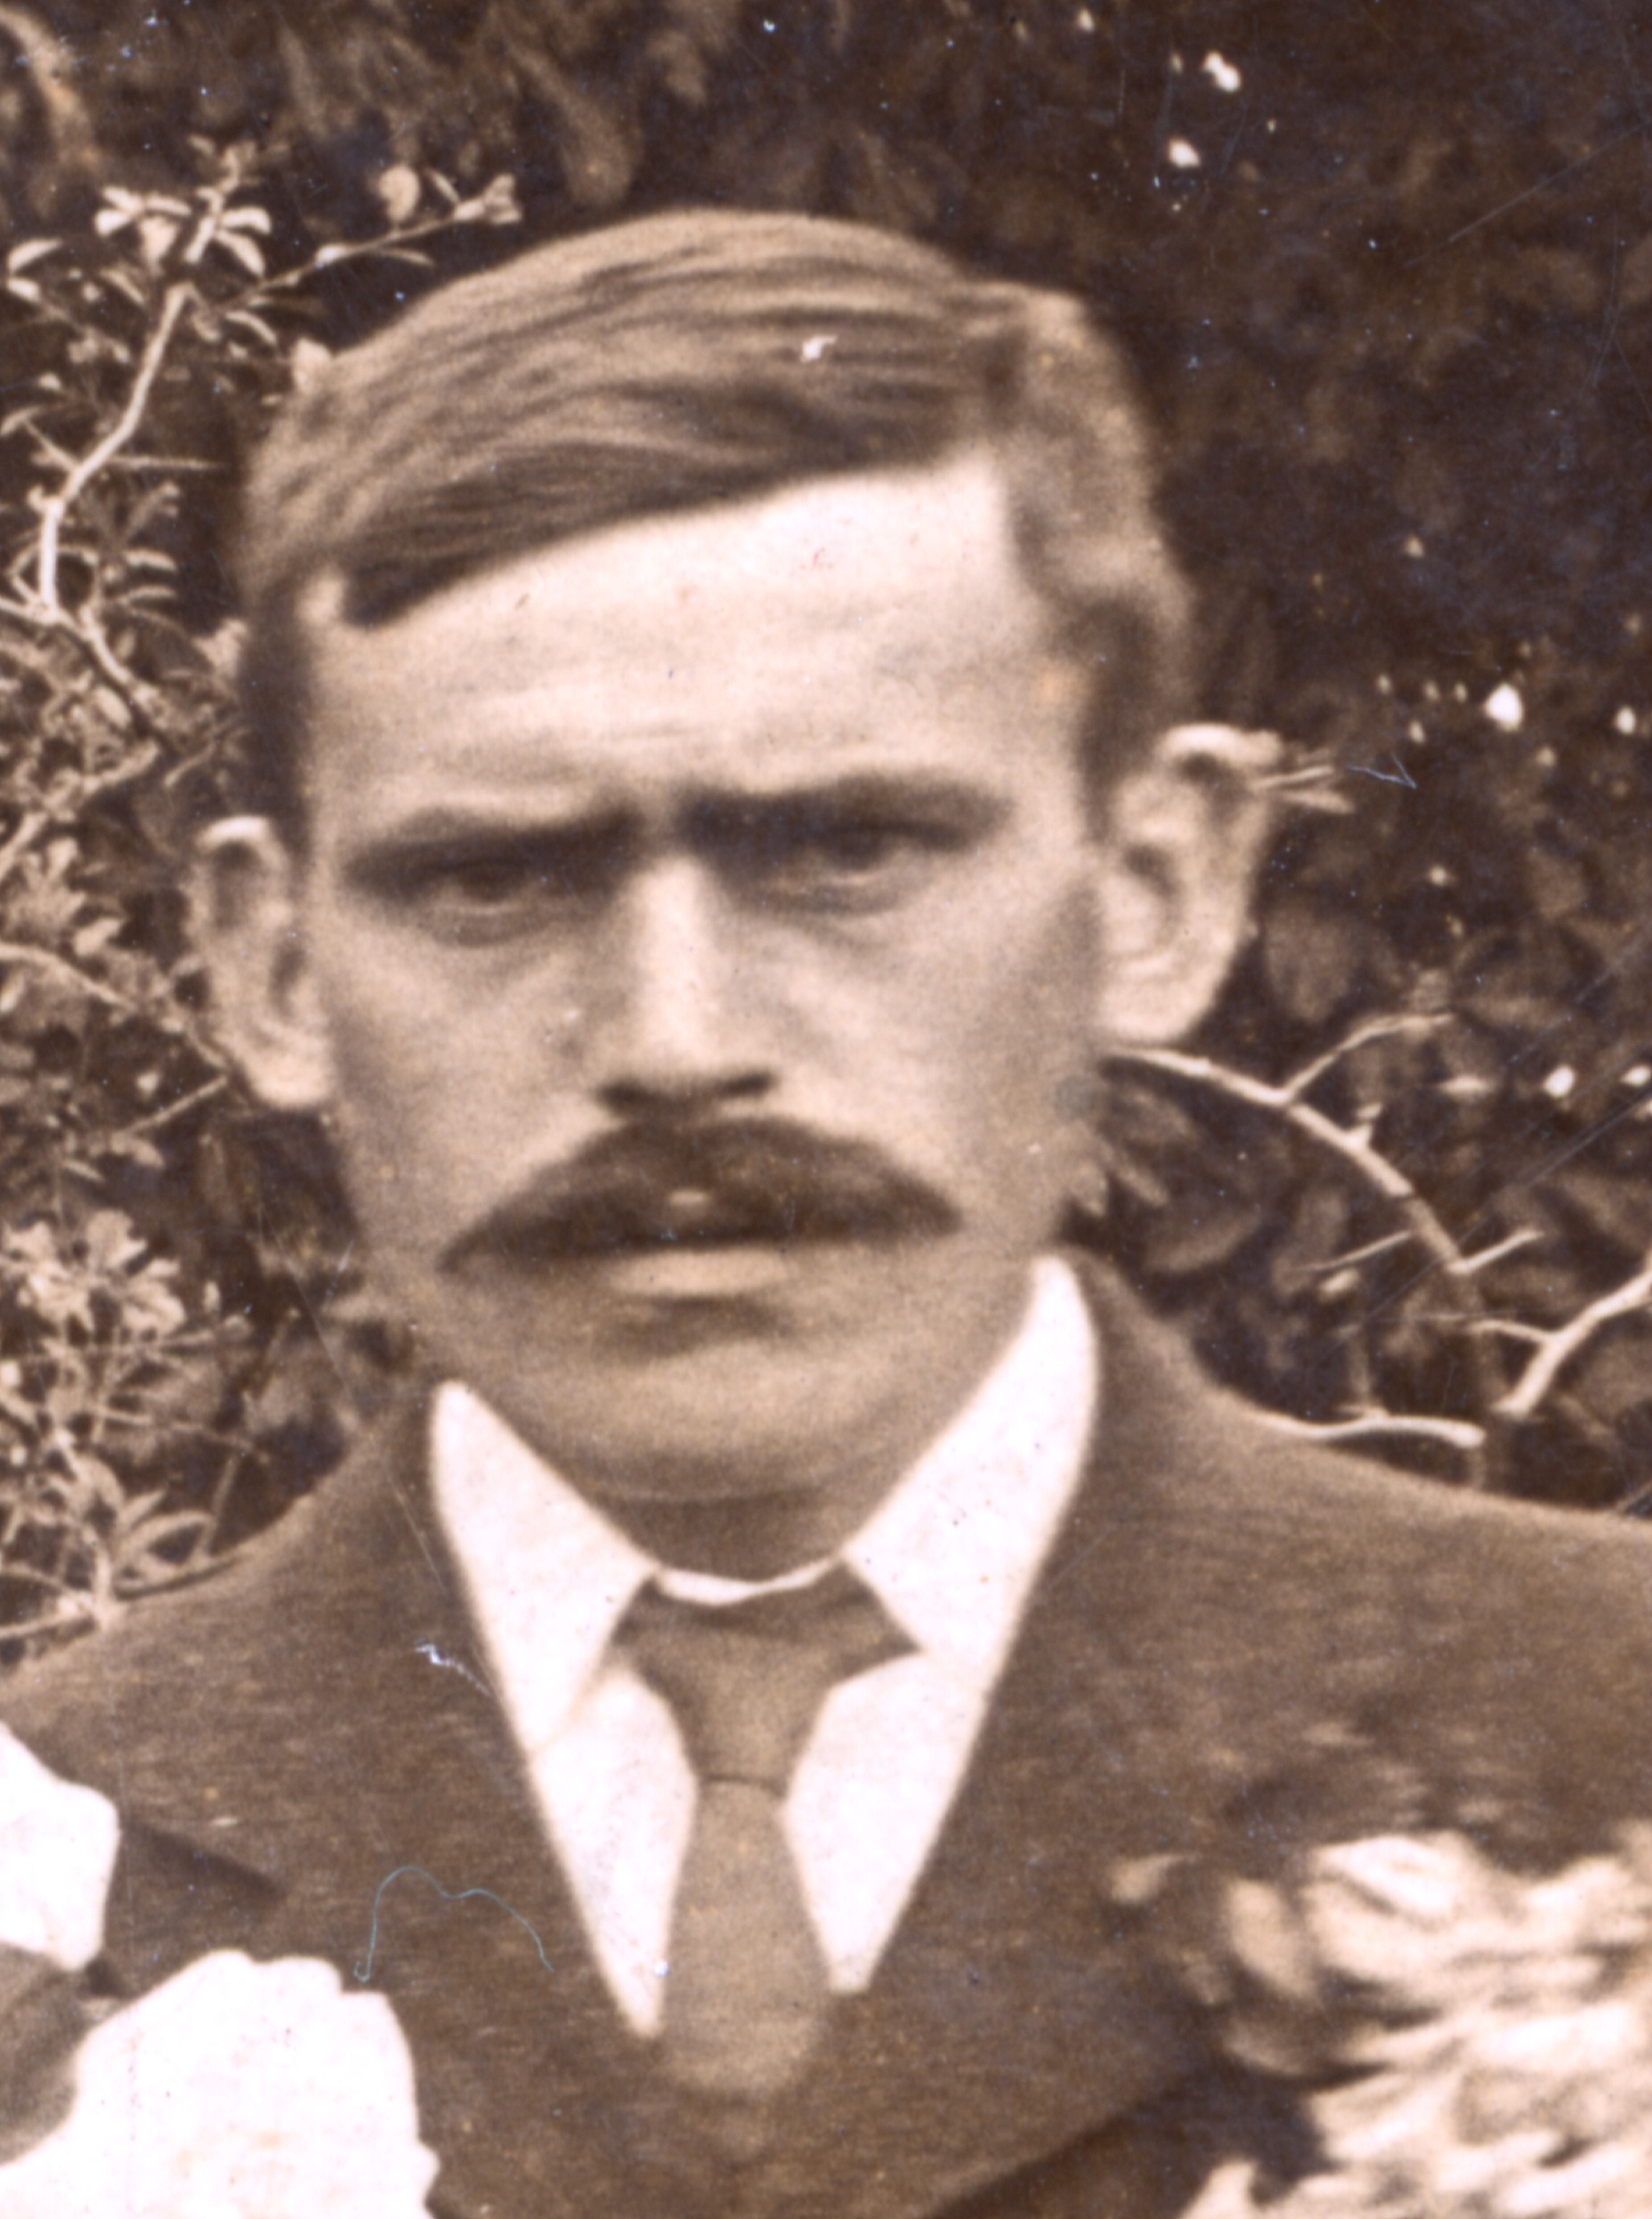 Ernest at his sister's wedding prior to the outbreak of WW1